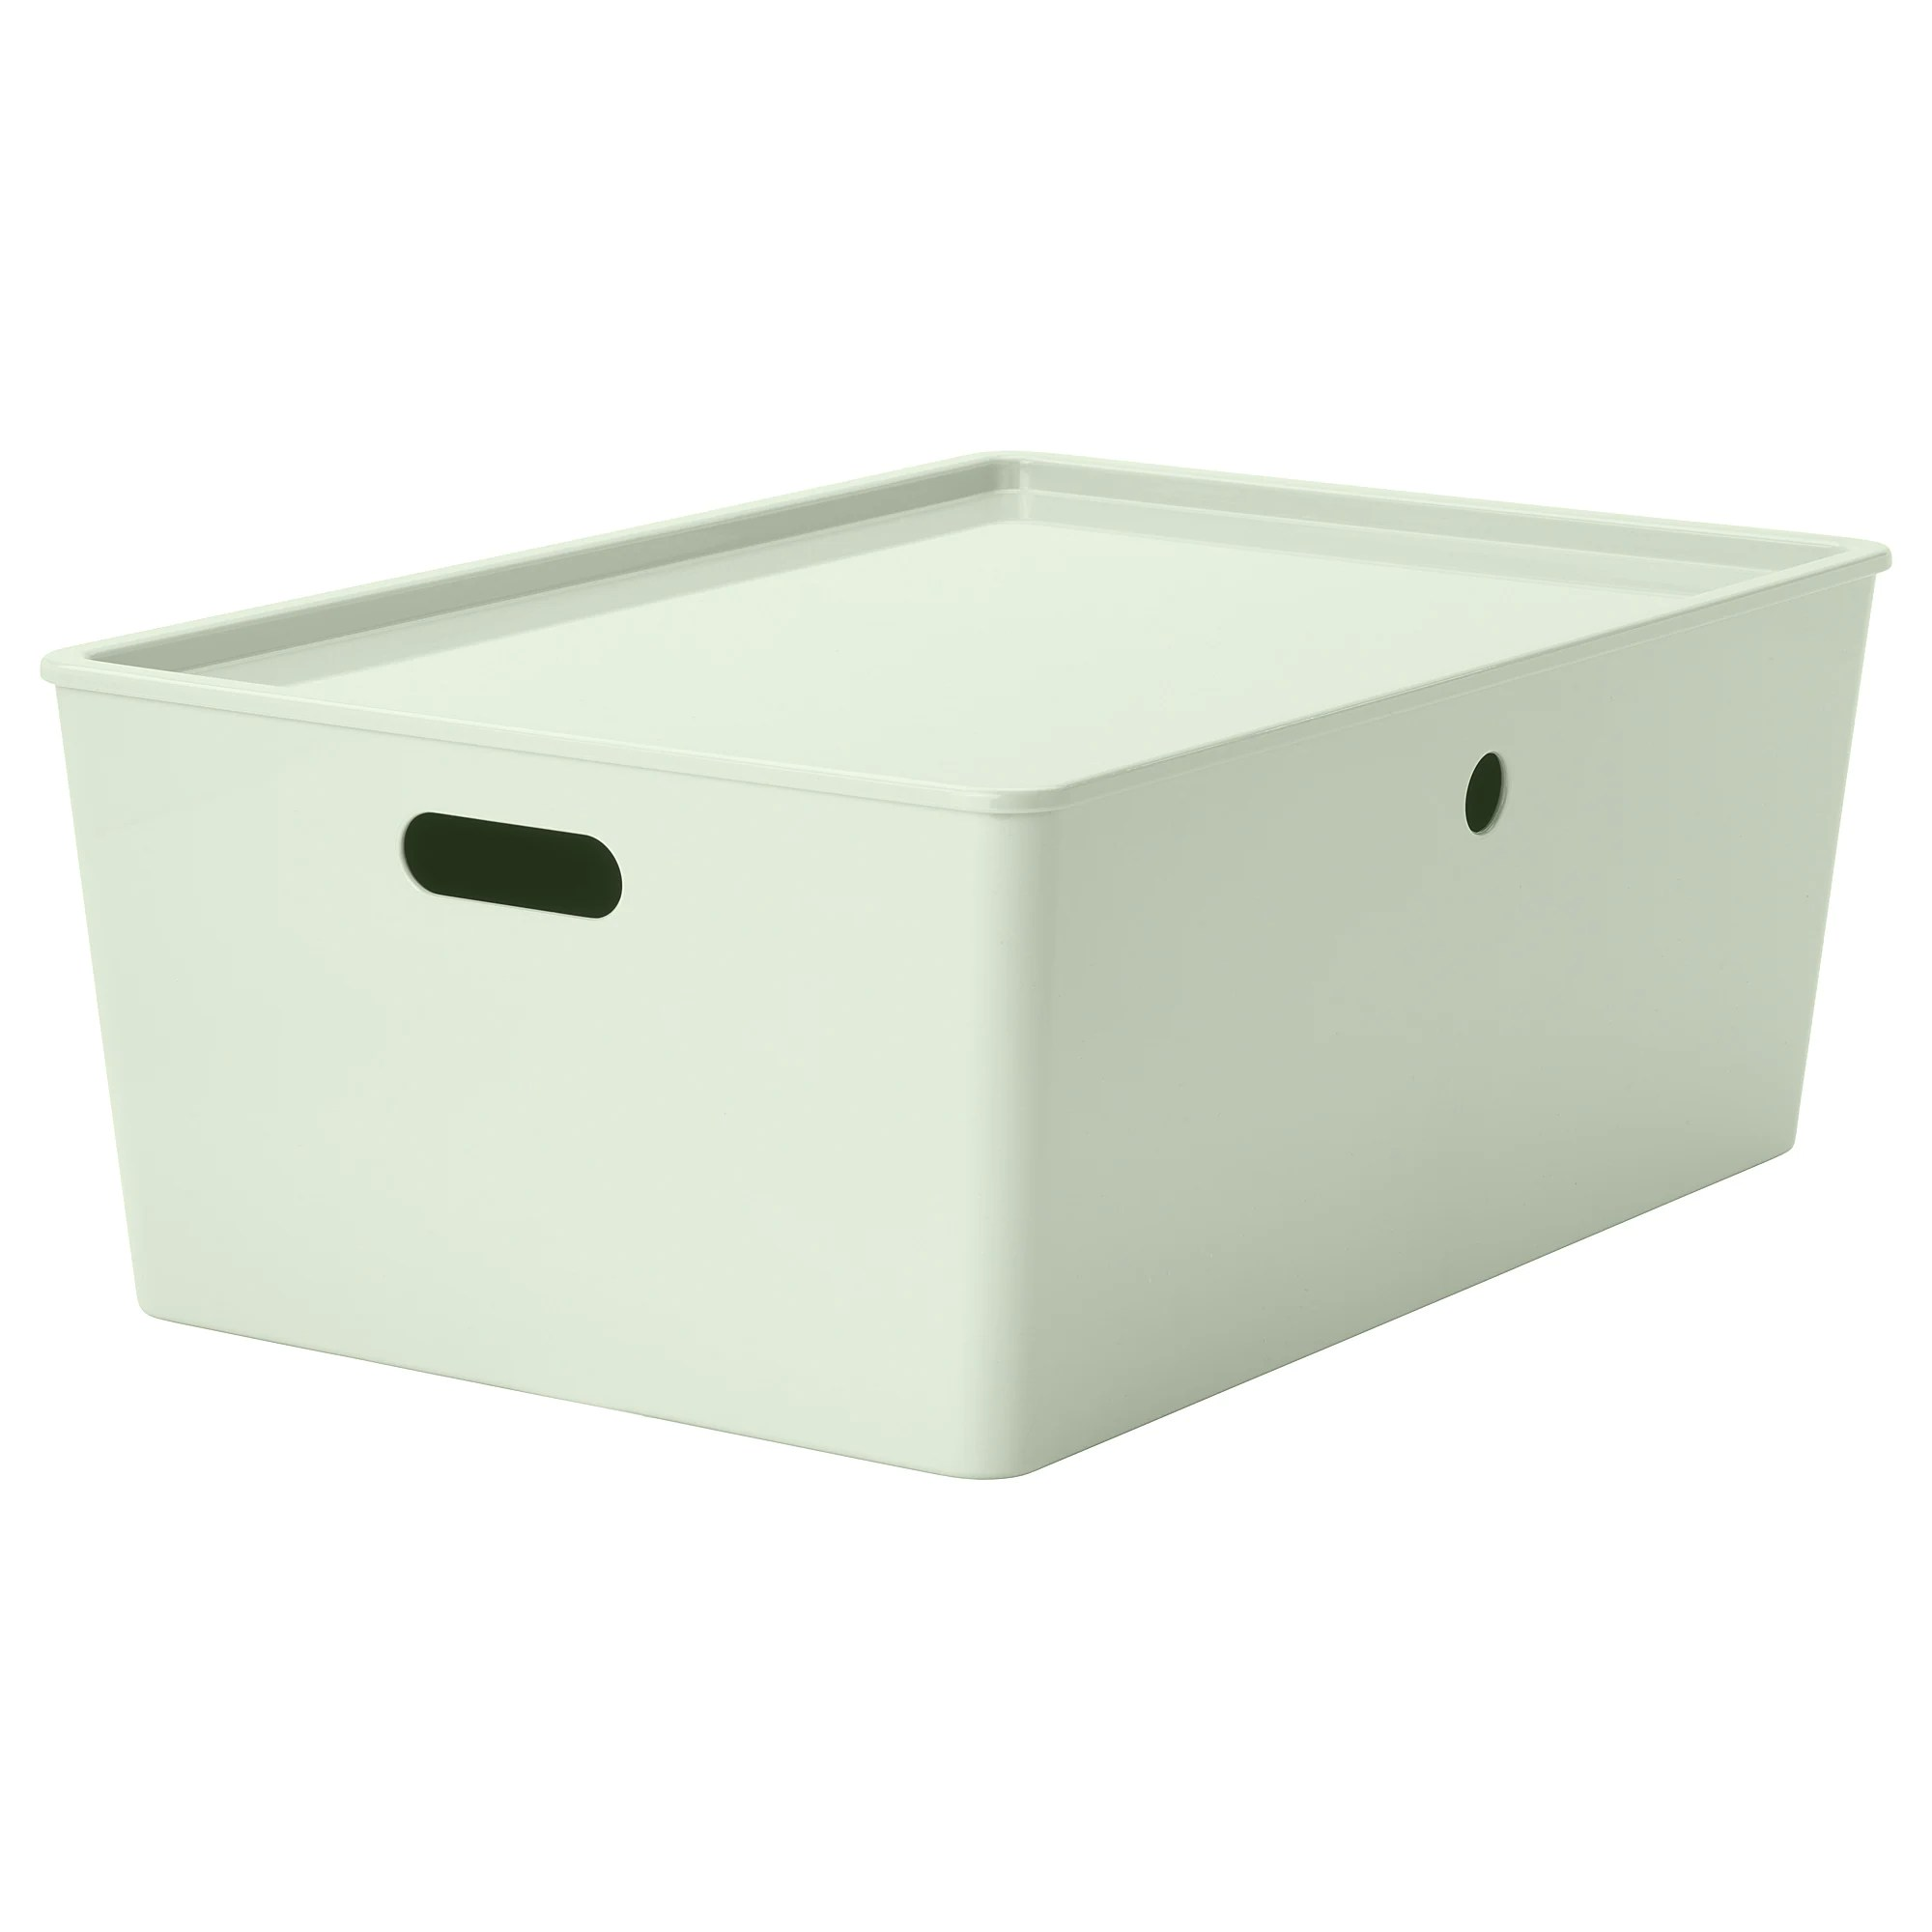 Ikea Küche Kinder Family Card Kuggis Storage Box With Lid Light Green